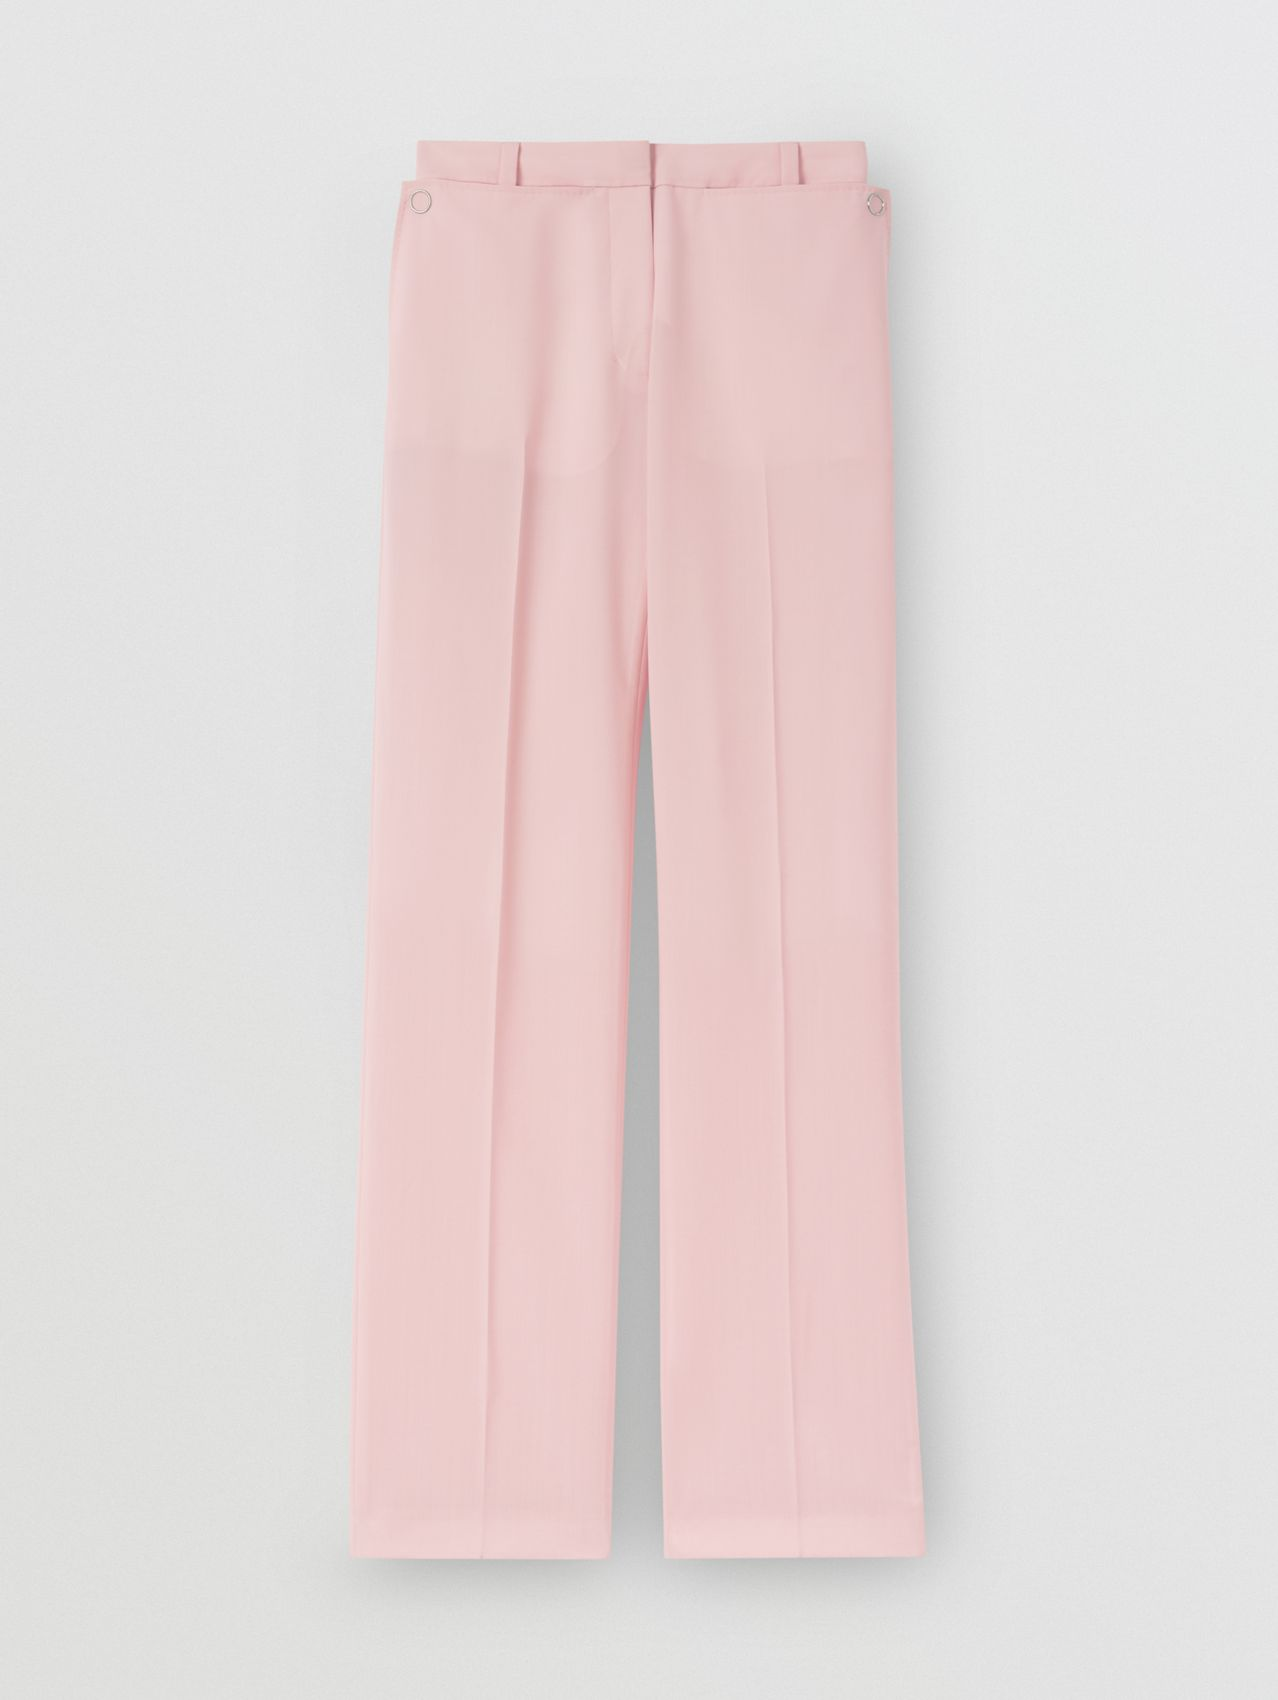 Pocket Detail Tumbled Wool Tailored Trousers in Soft Pink